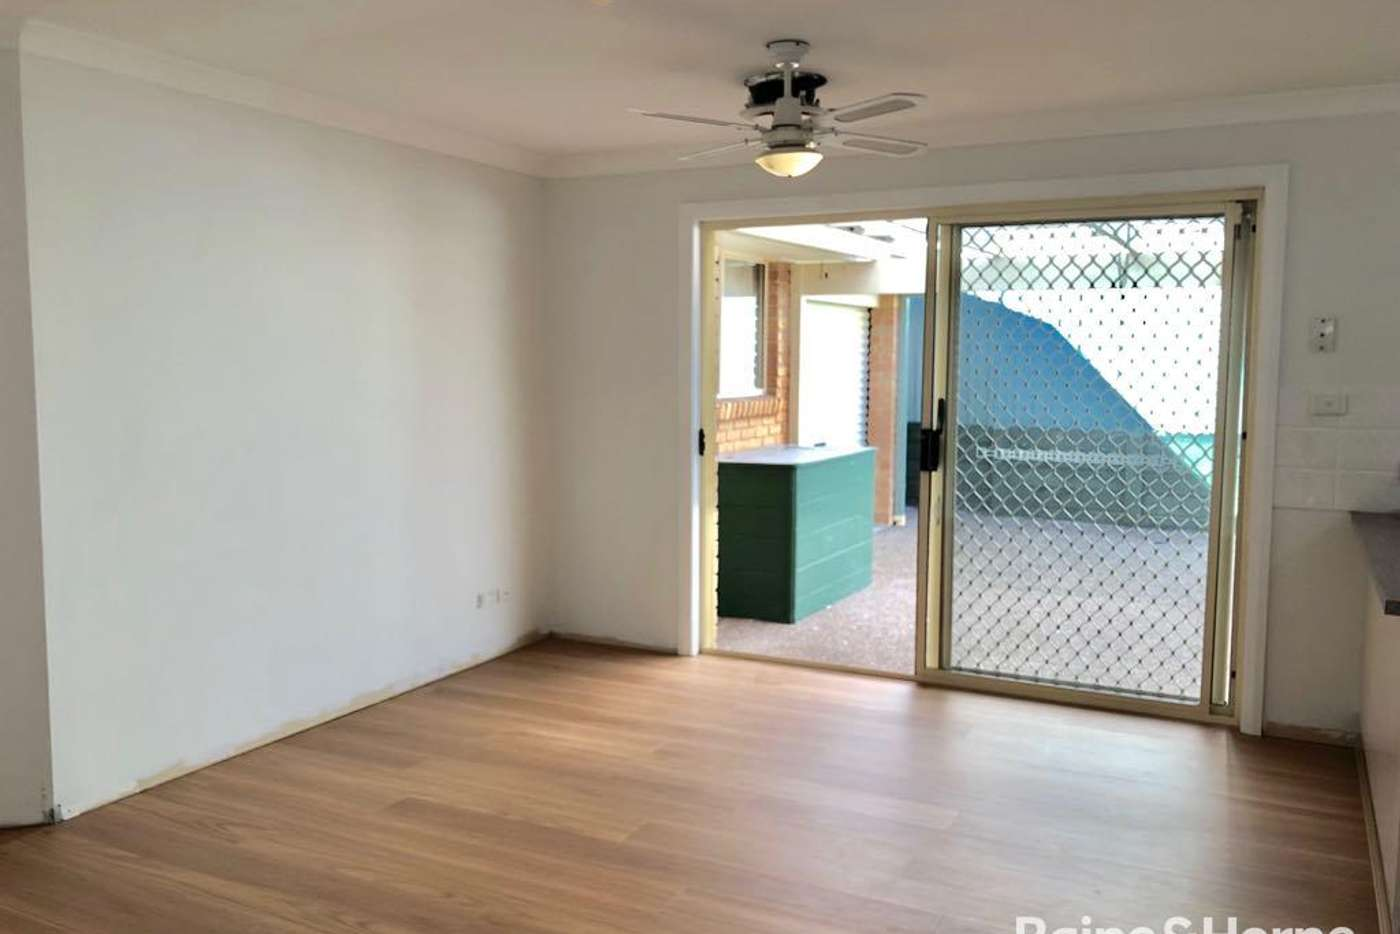 Sixth view of Homely house listing, 1A Hough Street, Nelson Bay NSW 2315